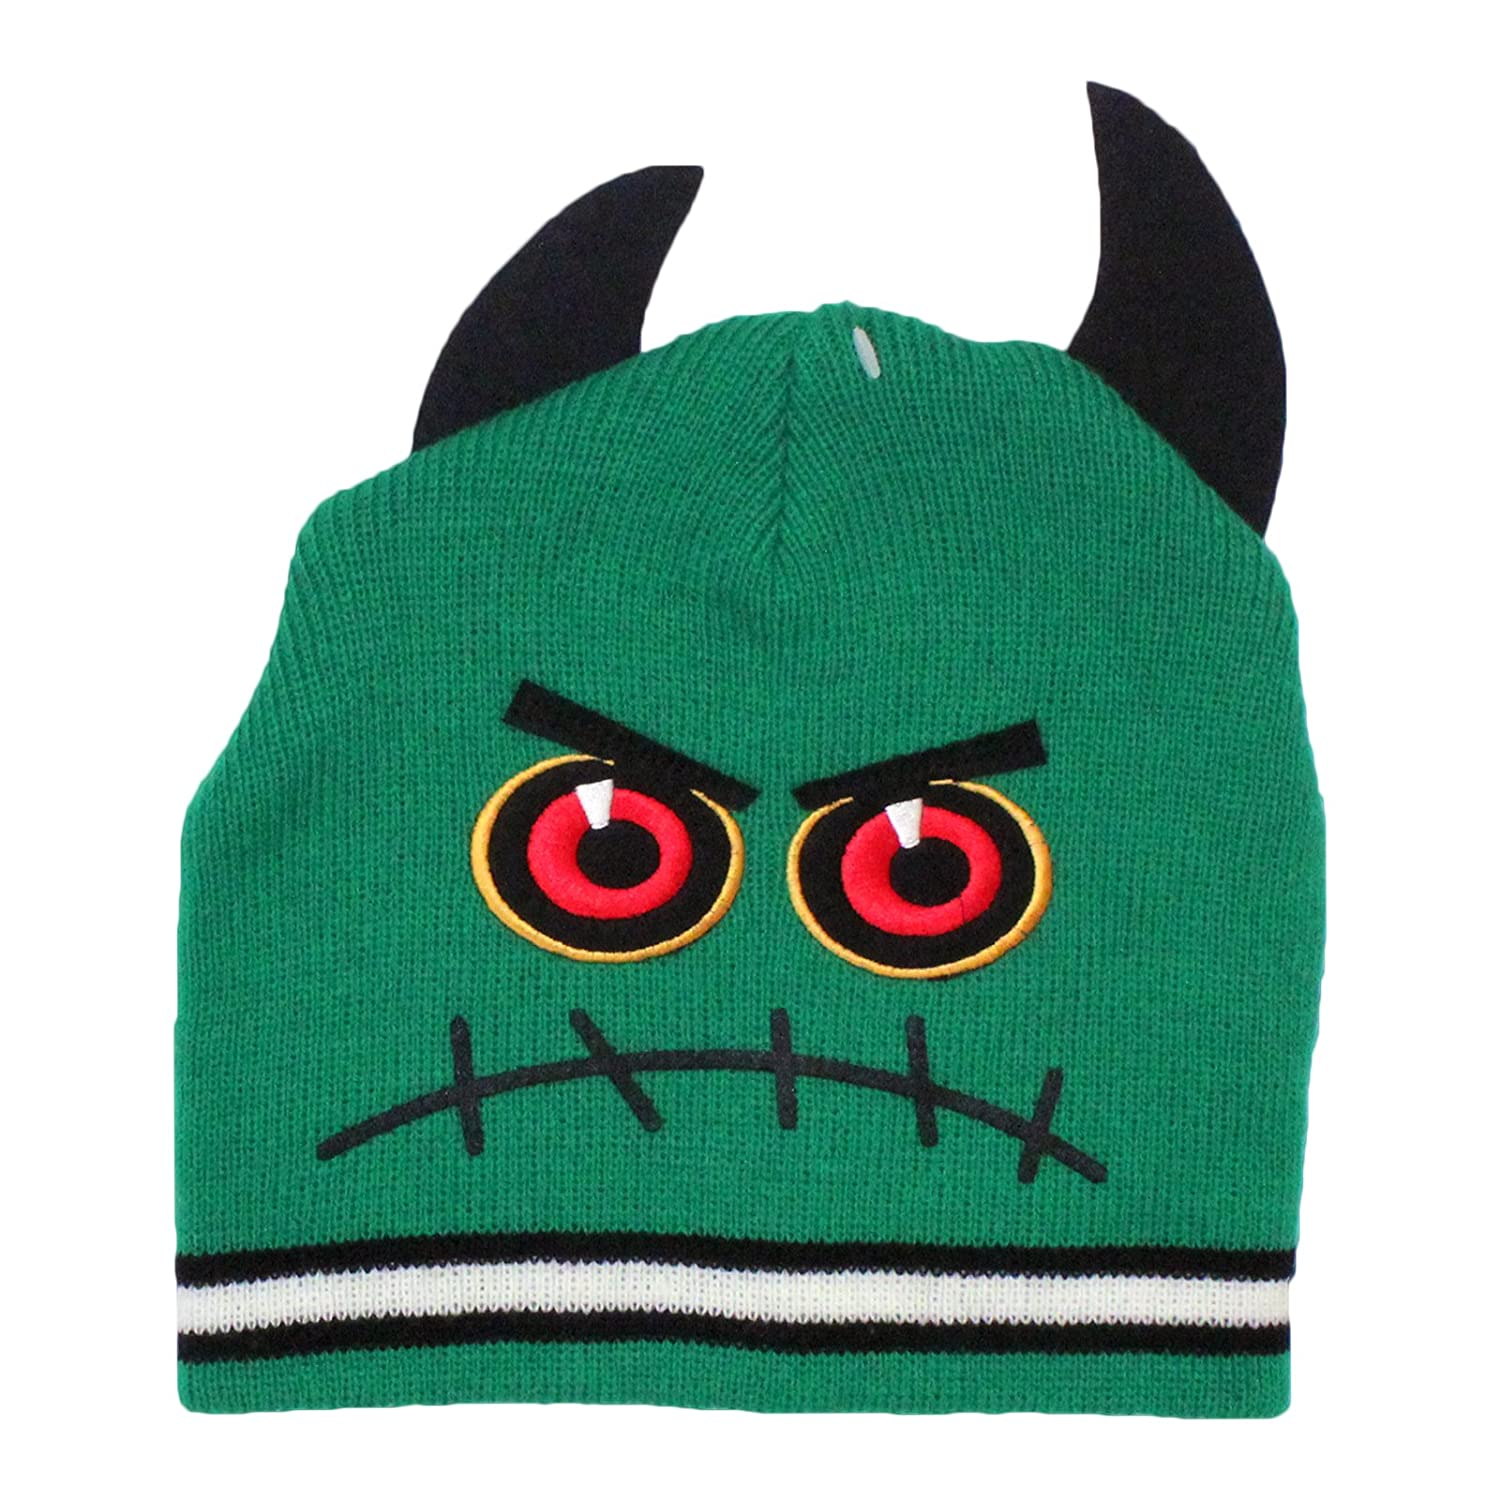 94bd4c325 Boys Green Monster with Horn Design Beanie Hat Age 3-6 Years: Amazon ...